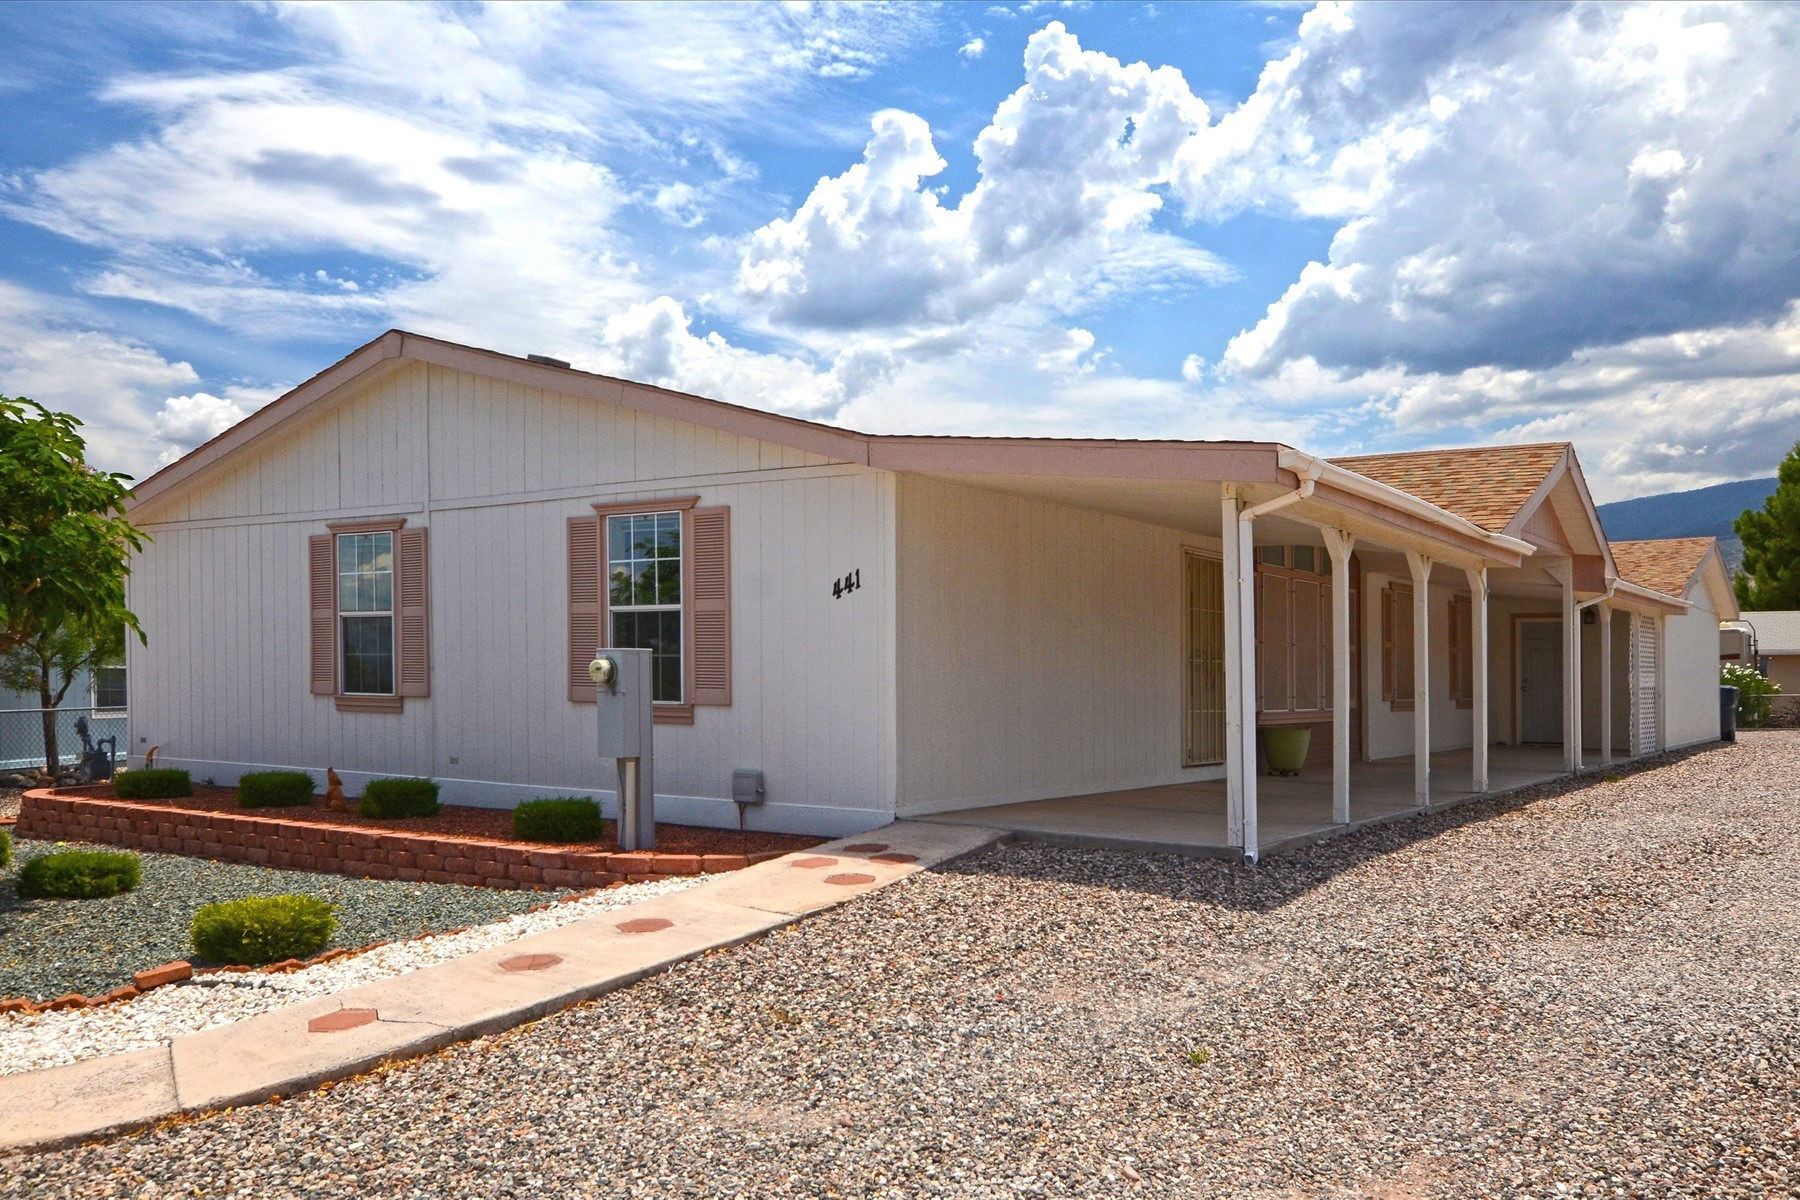 Single Family Homes for Active at Immaculate Modular Home 441 Celestial Drive Clarkdale, Arizona 86324 United States